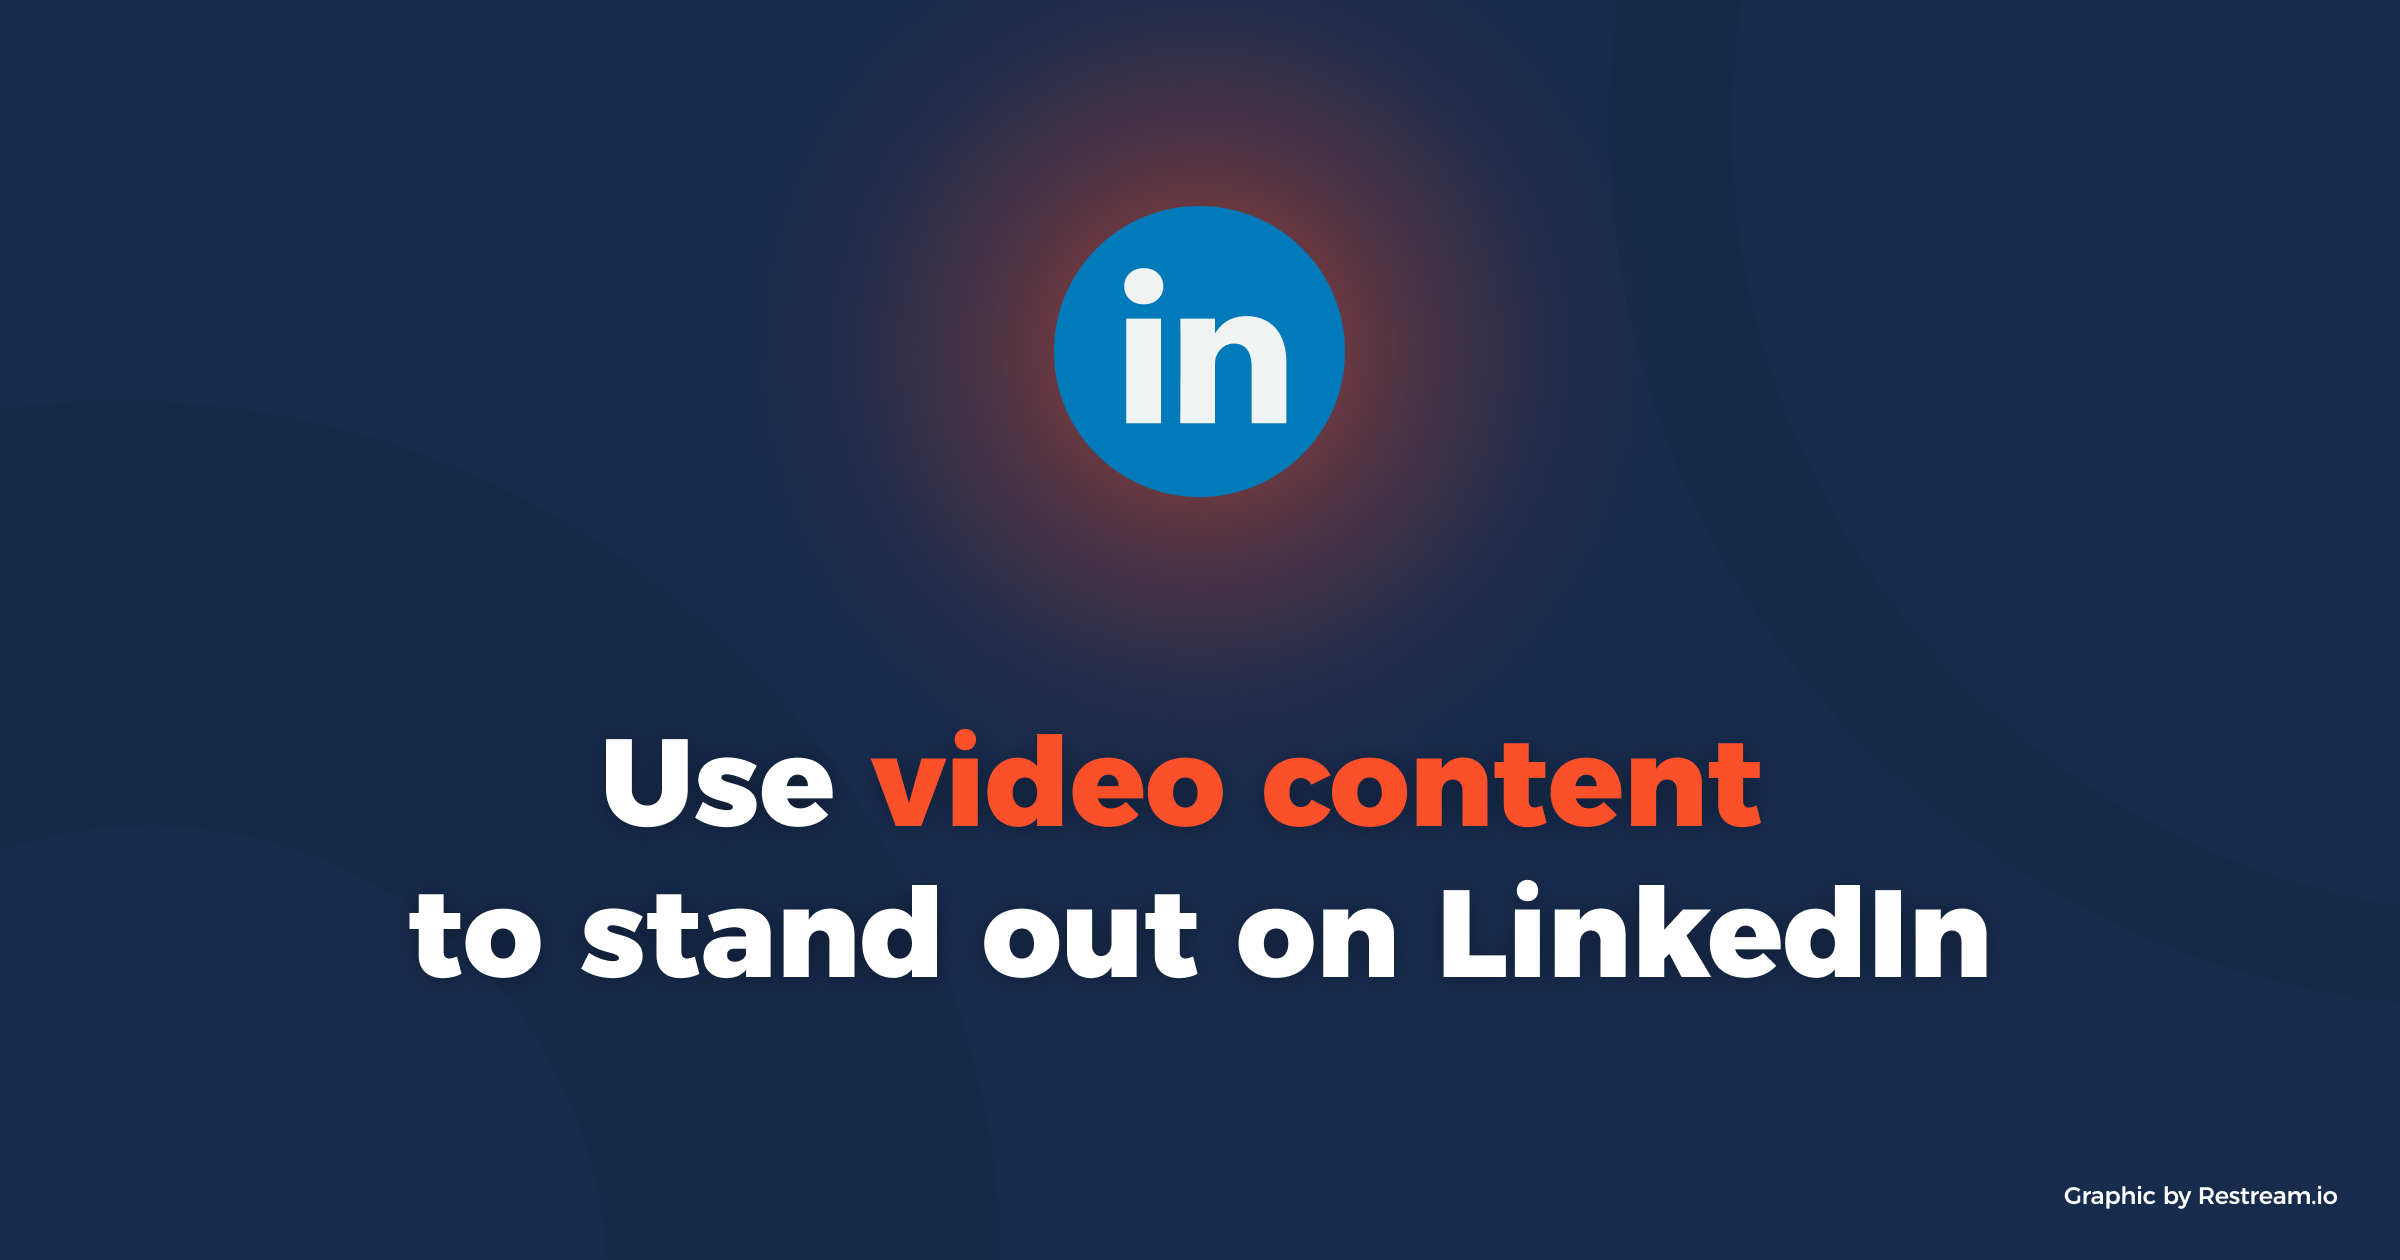 Use video content to stand out on LinkedIn